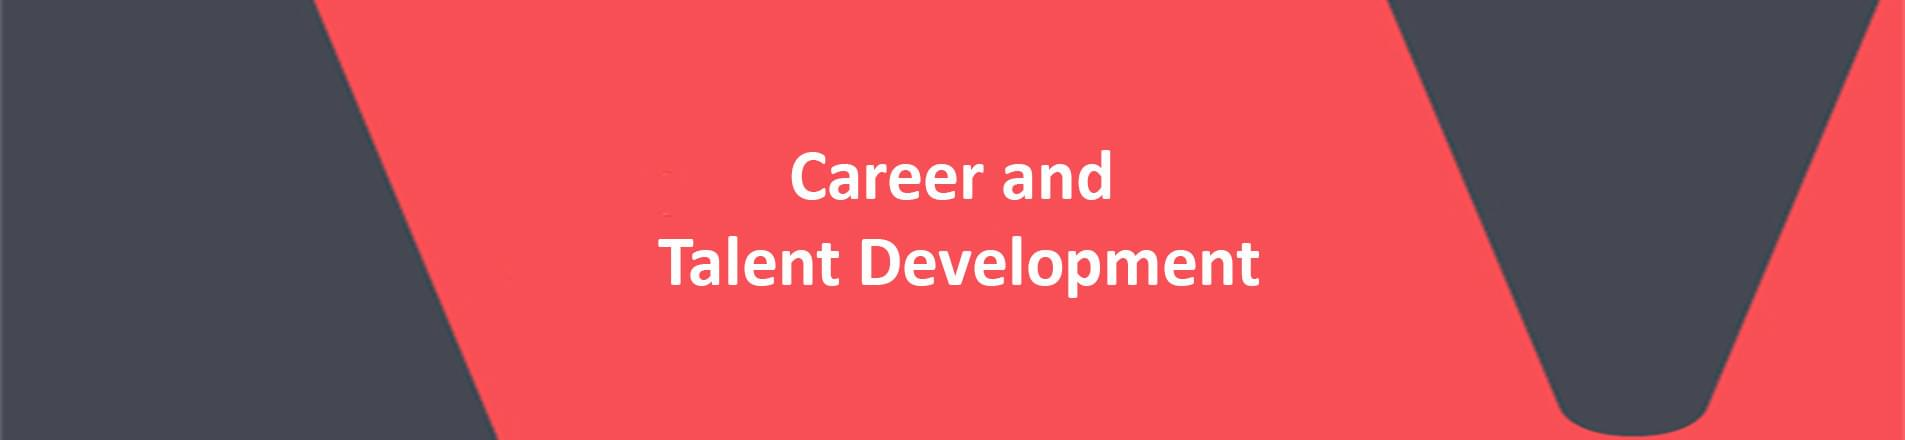 red banner with white text reading careers and talent development